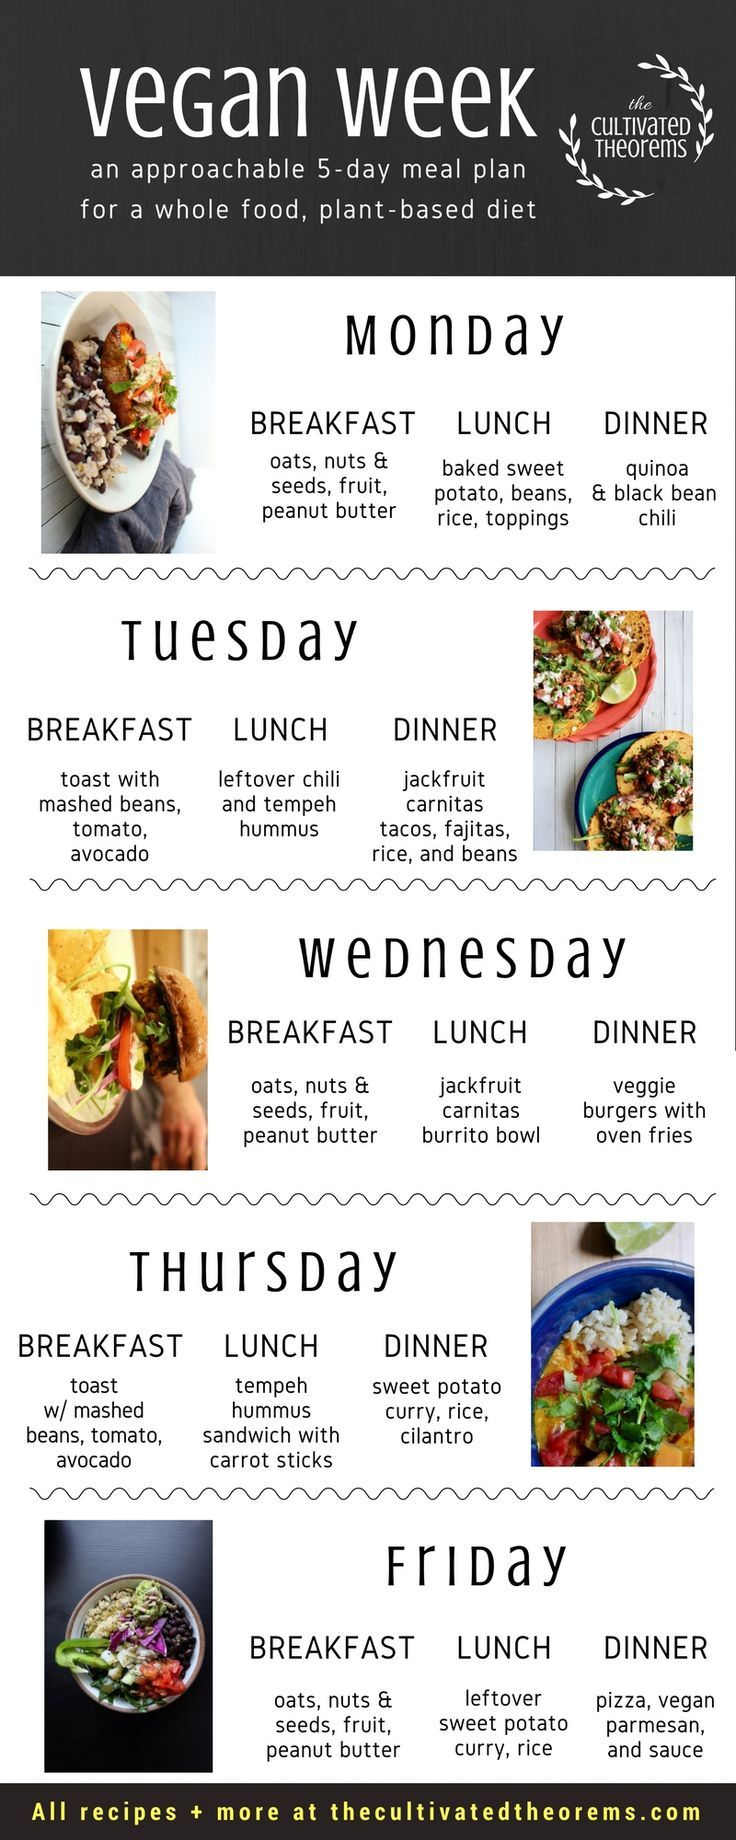 5 Day Easy Vegan Meal Plan For Beginners Easy Vegan Meal Plan Vegan Meal Plans Vegan Recipes Easy